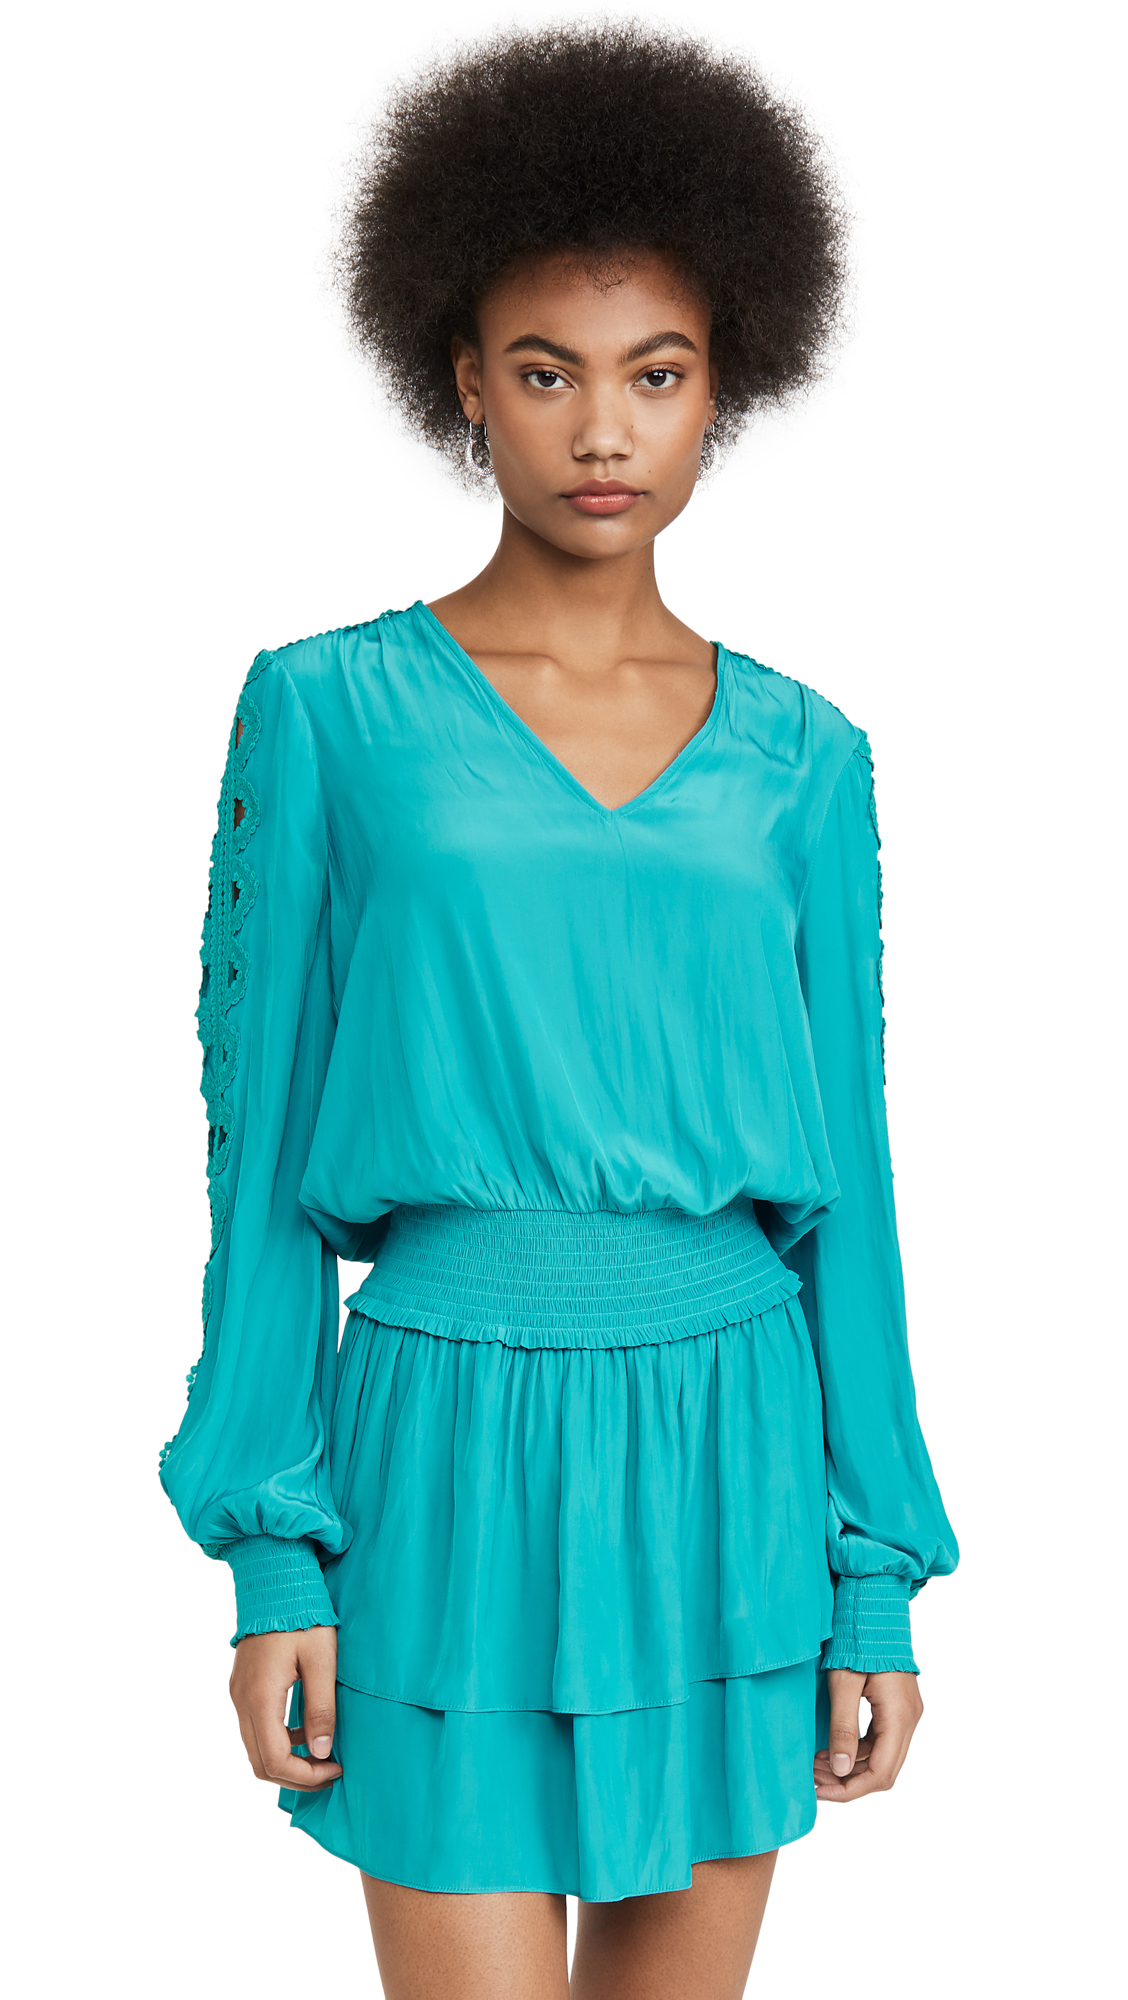 Photo of Ramy Brook Starling Dress - shop Ramy Brook Clothing, Dresses online